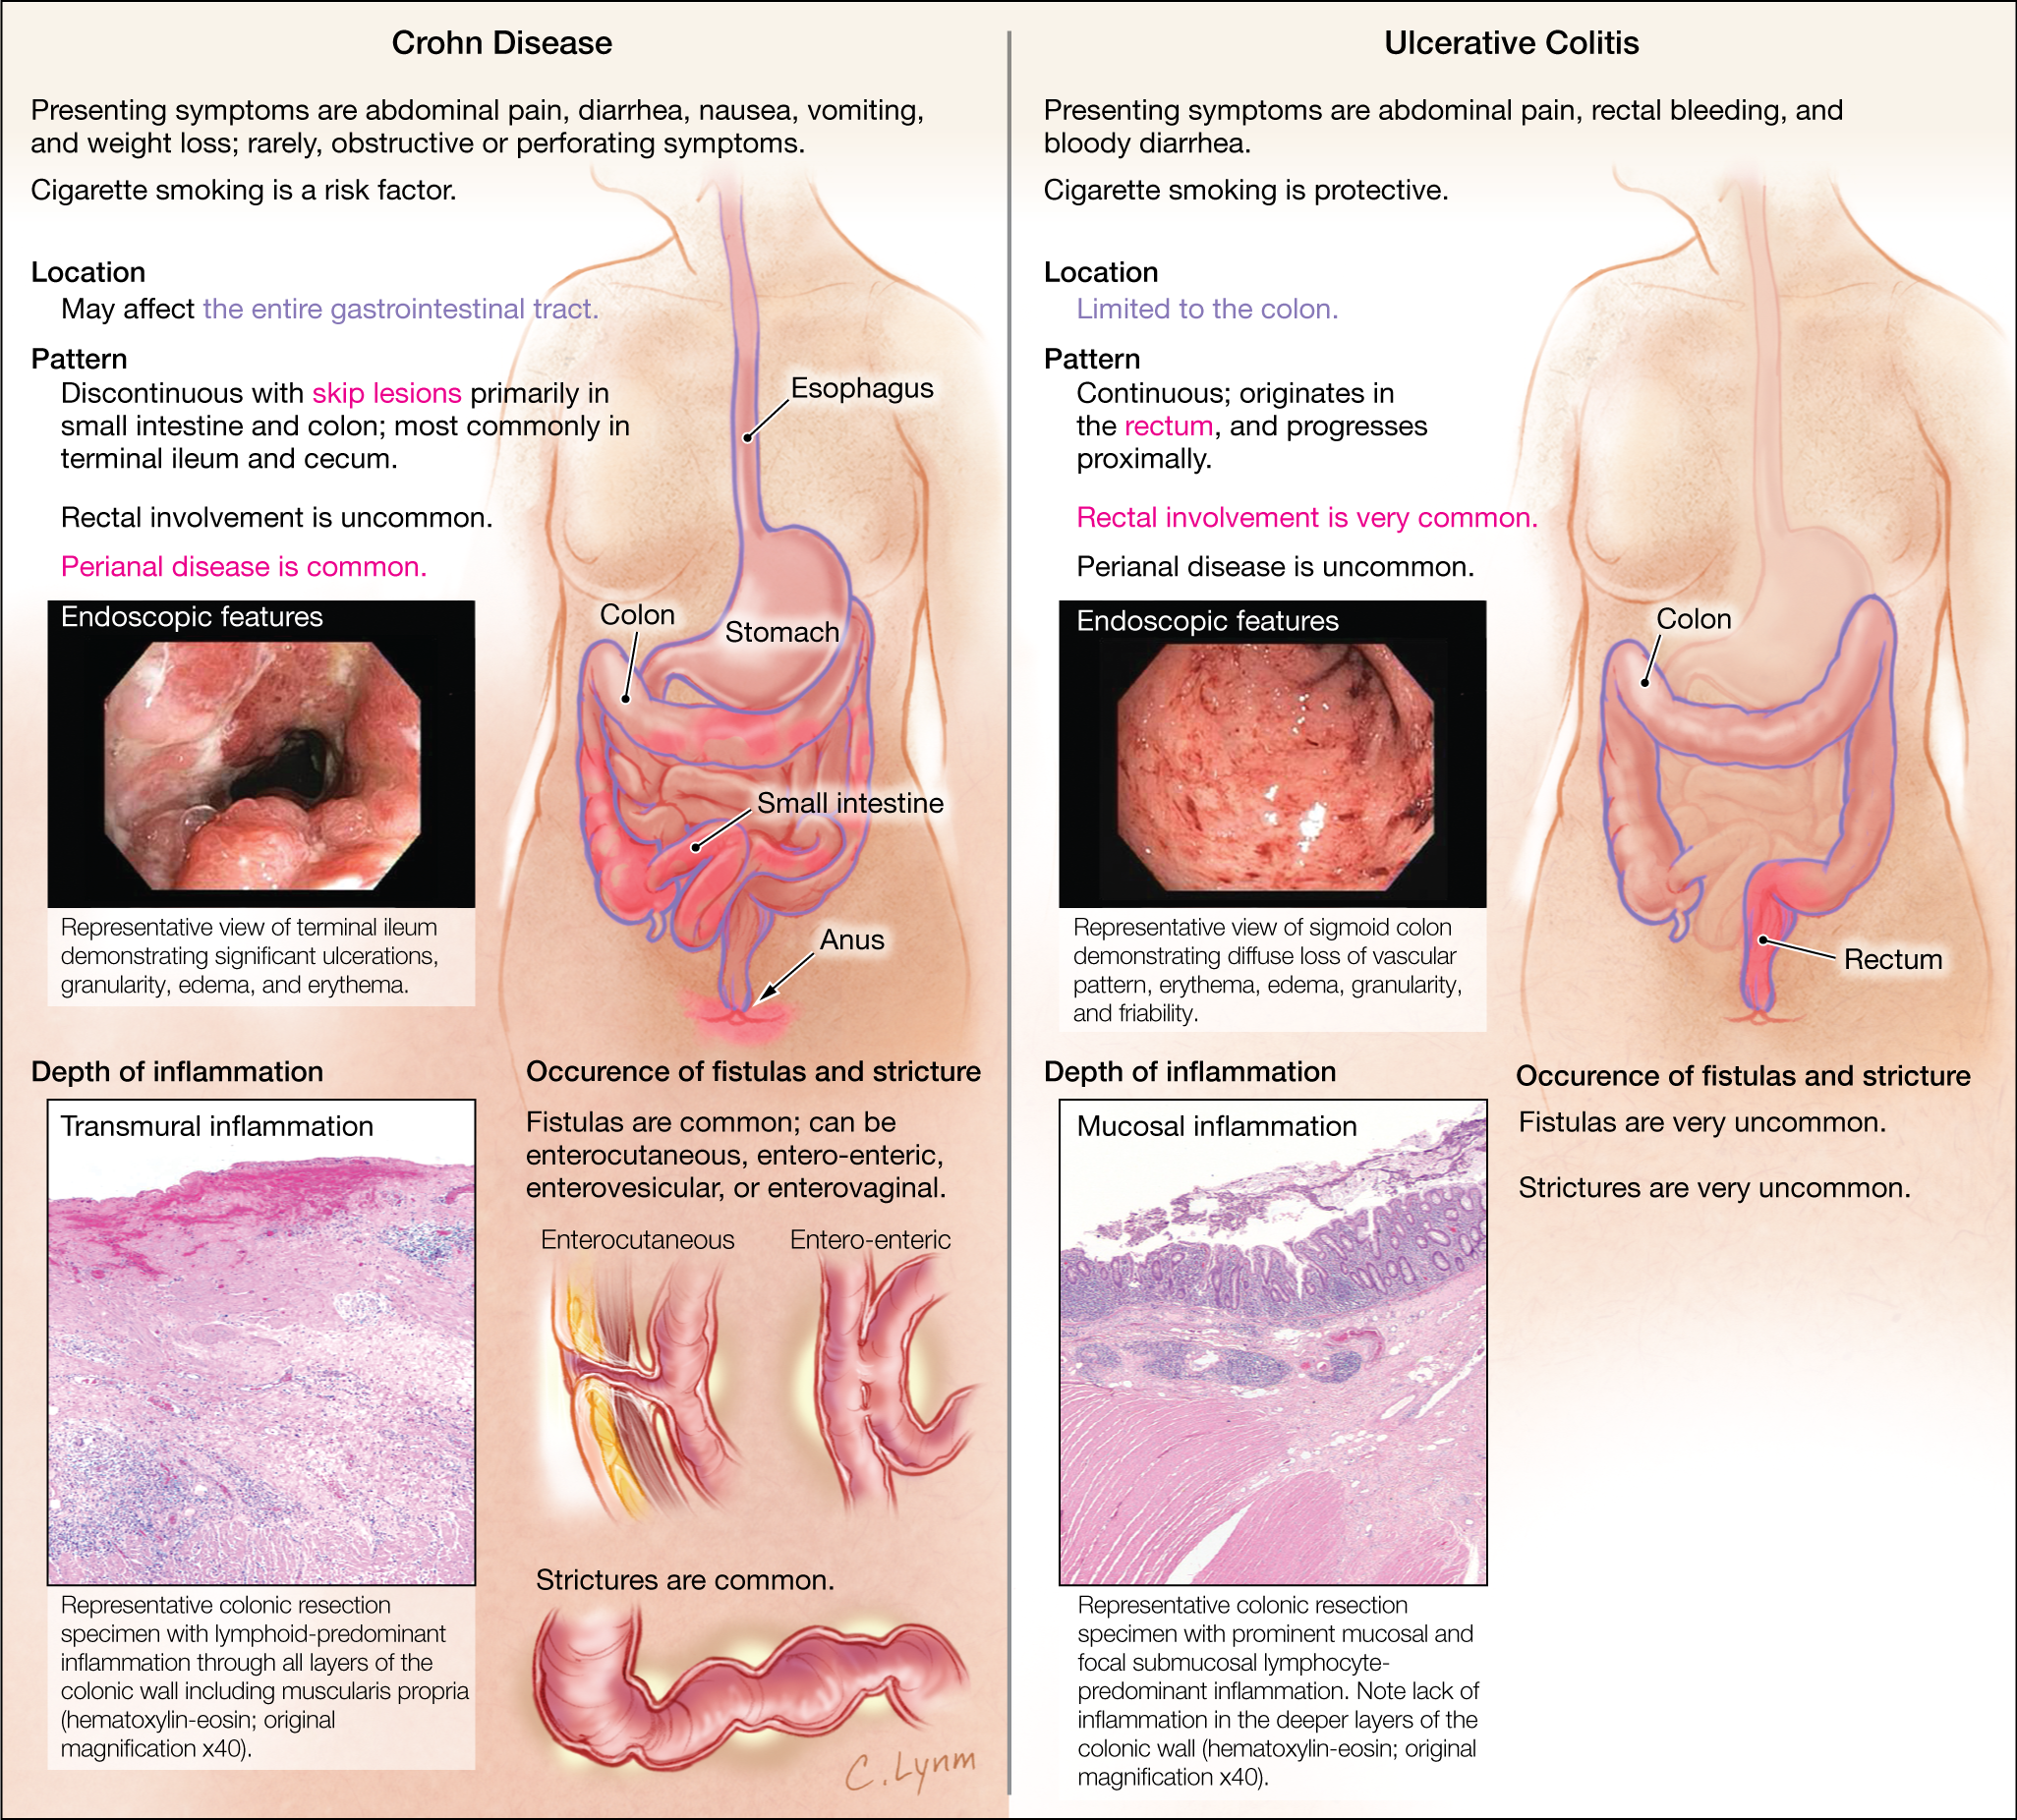 ulcerative colitis disease Ulcerative colitis is a chronic, or long-lasting, disease that causes inflammation and sores, called ulcers, in the inner lining of the large intestine, which includes the colon and the rectum - the end part of the colon.